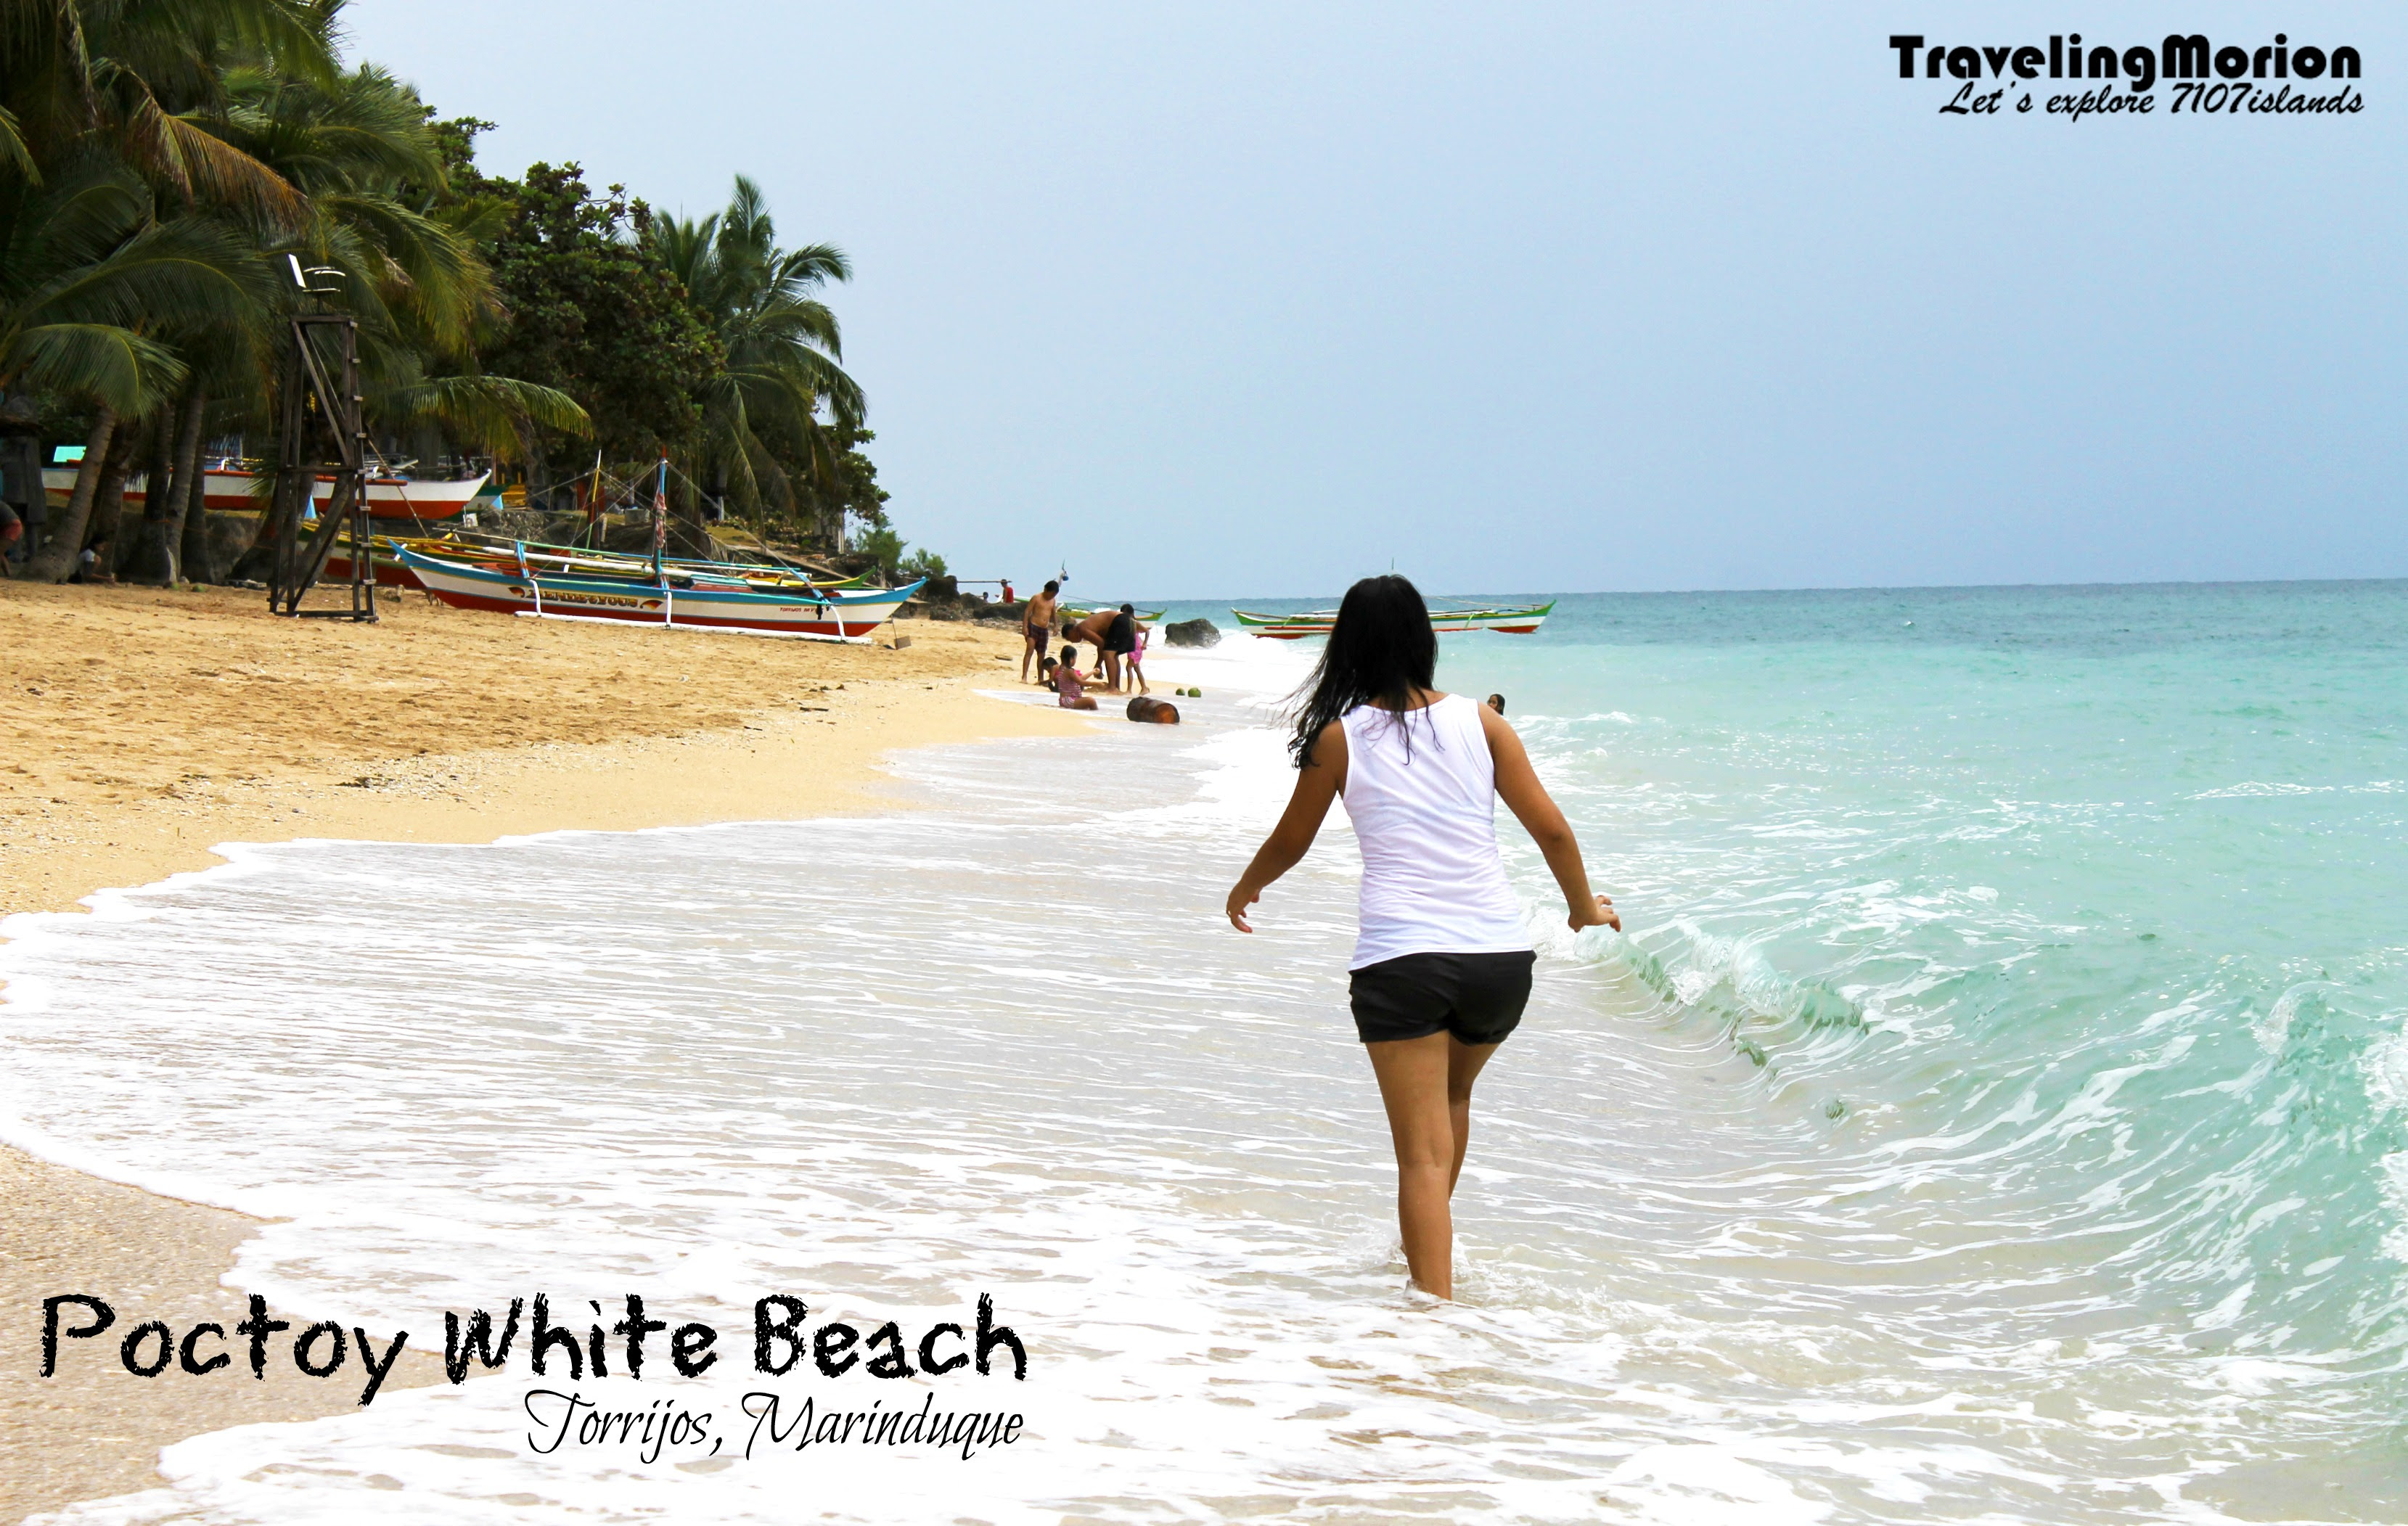 Poctoy White Beach in Torrijos